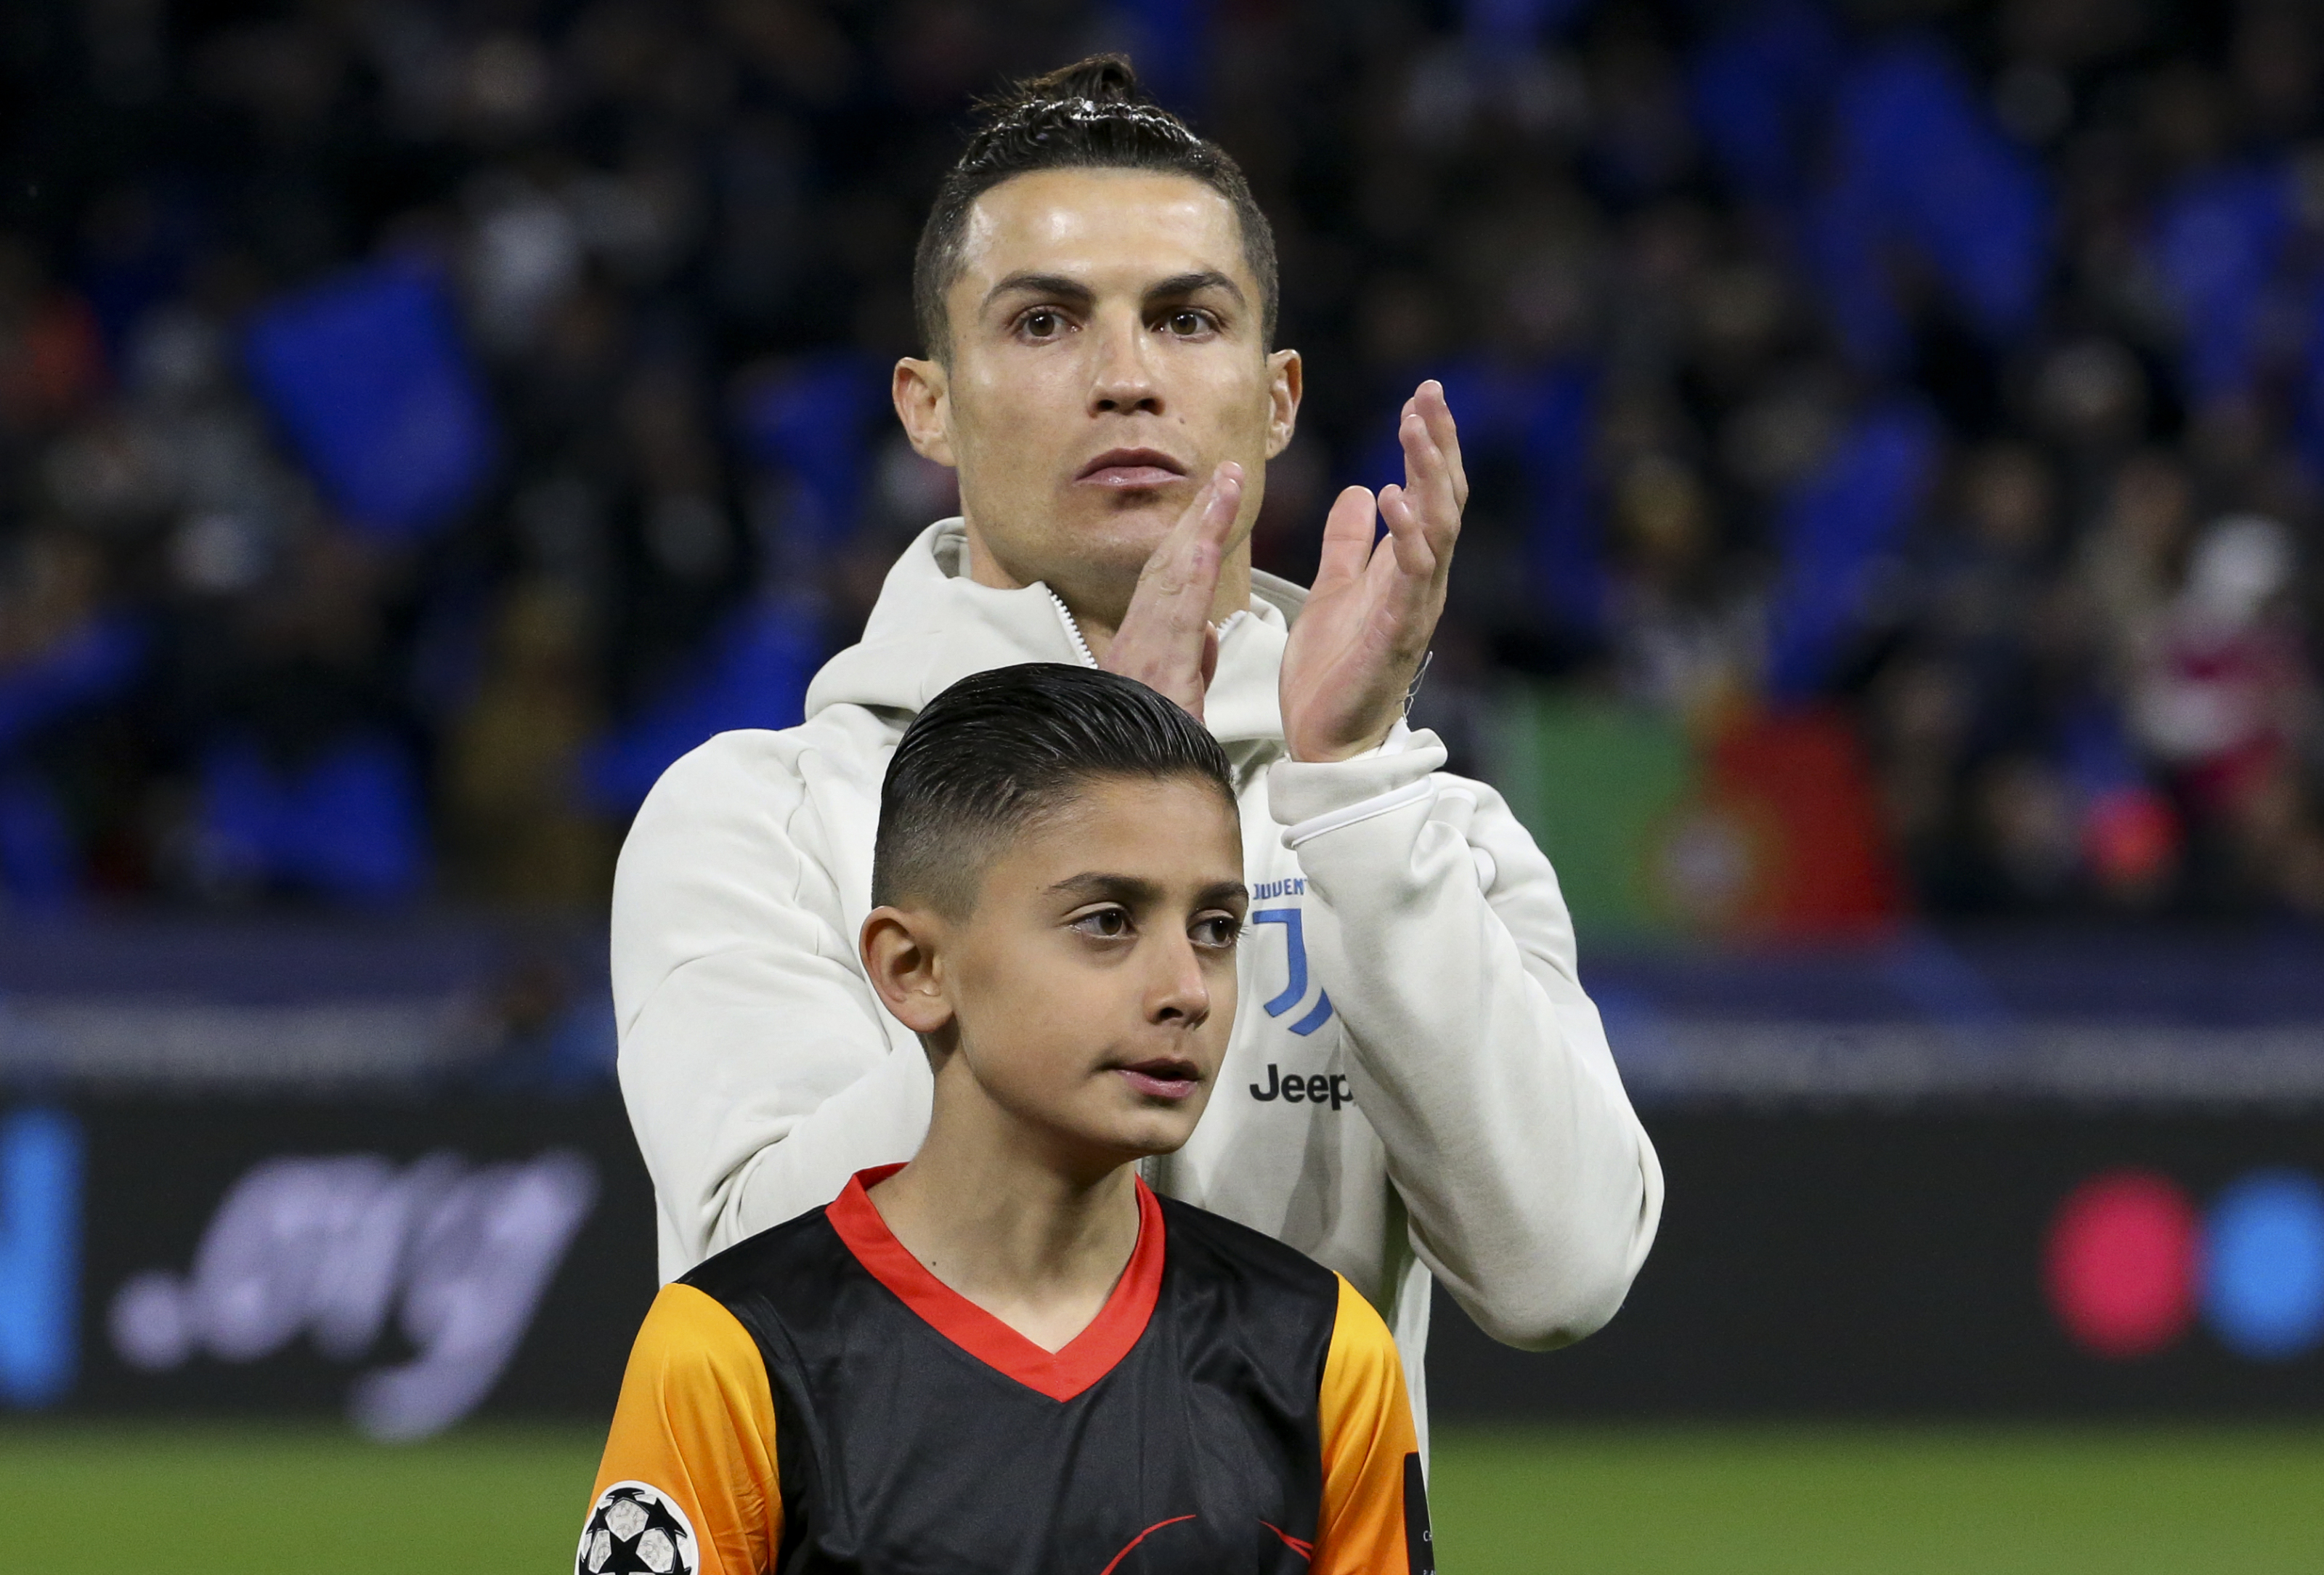 Juventus: Cristiano Ronaldo takes pay cut to relieve stress of the club